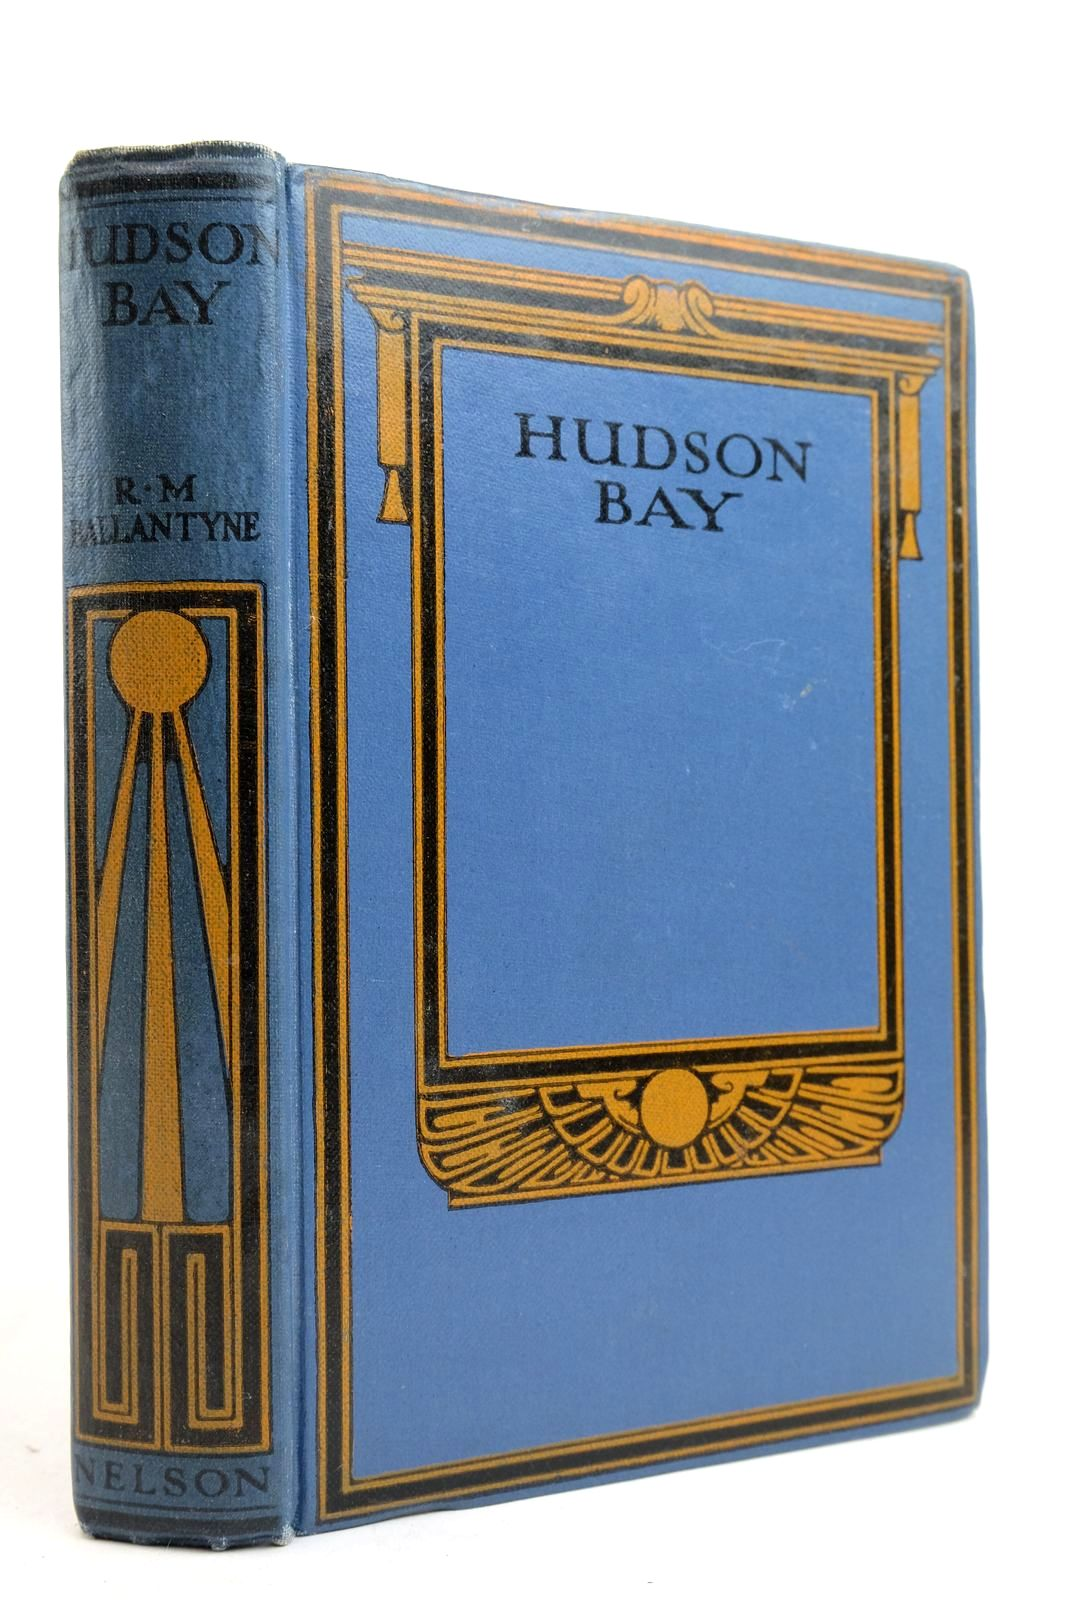 Photo of HUDSON BAY written by Ballantyne, R.M. published by Thomas Nelson and Sons Ltd. (STOCK CODE: 2134974)  for sale by Stella & Rose's Books